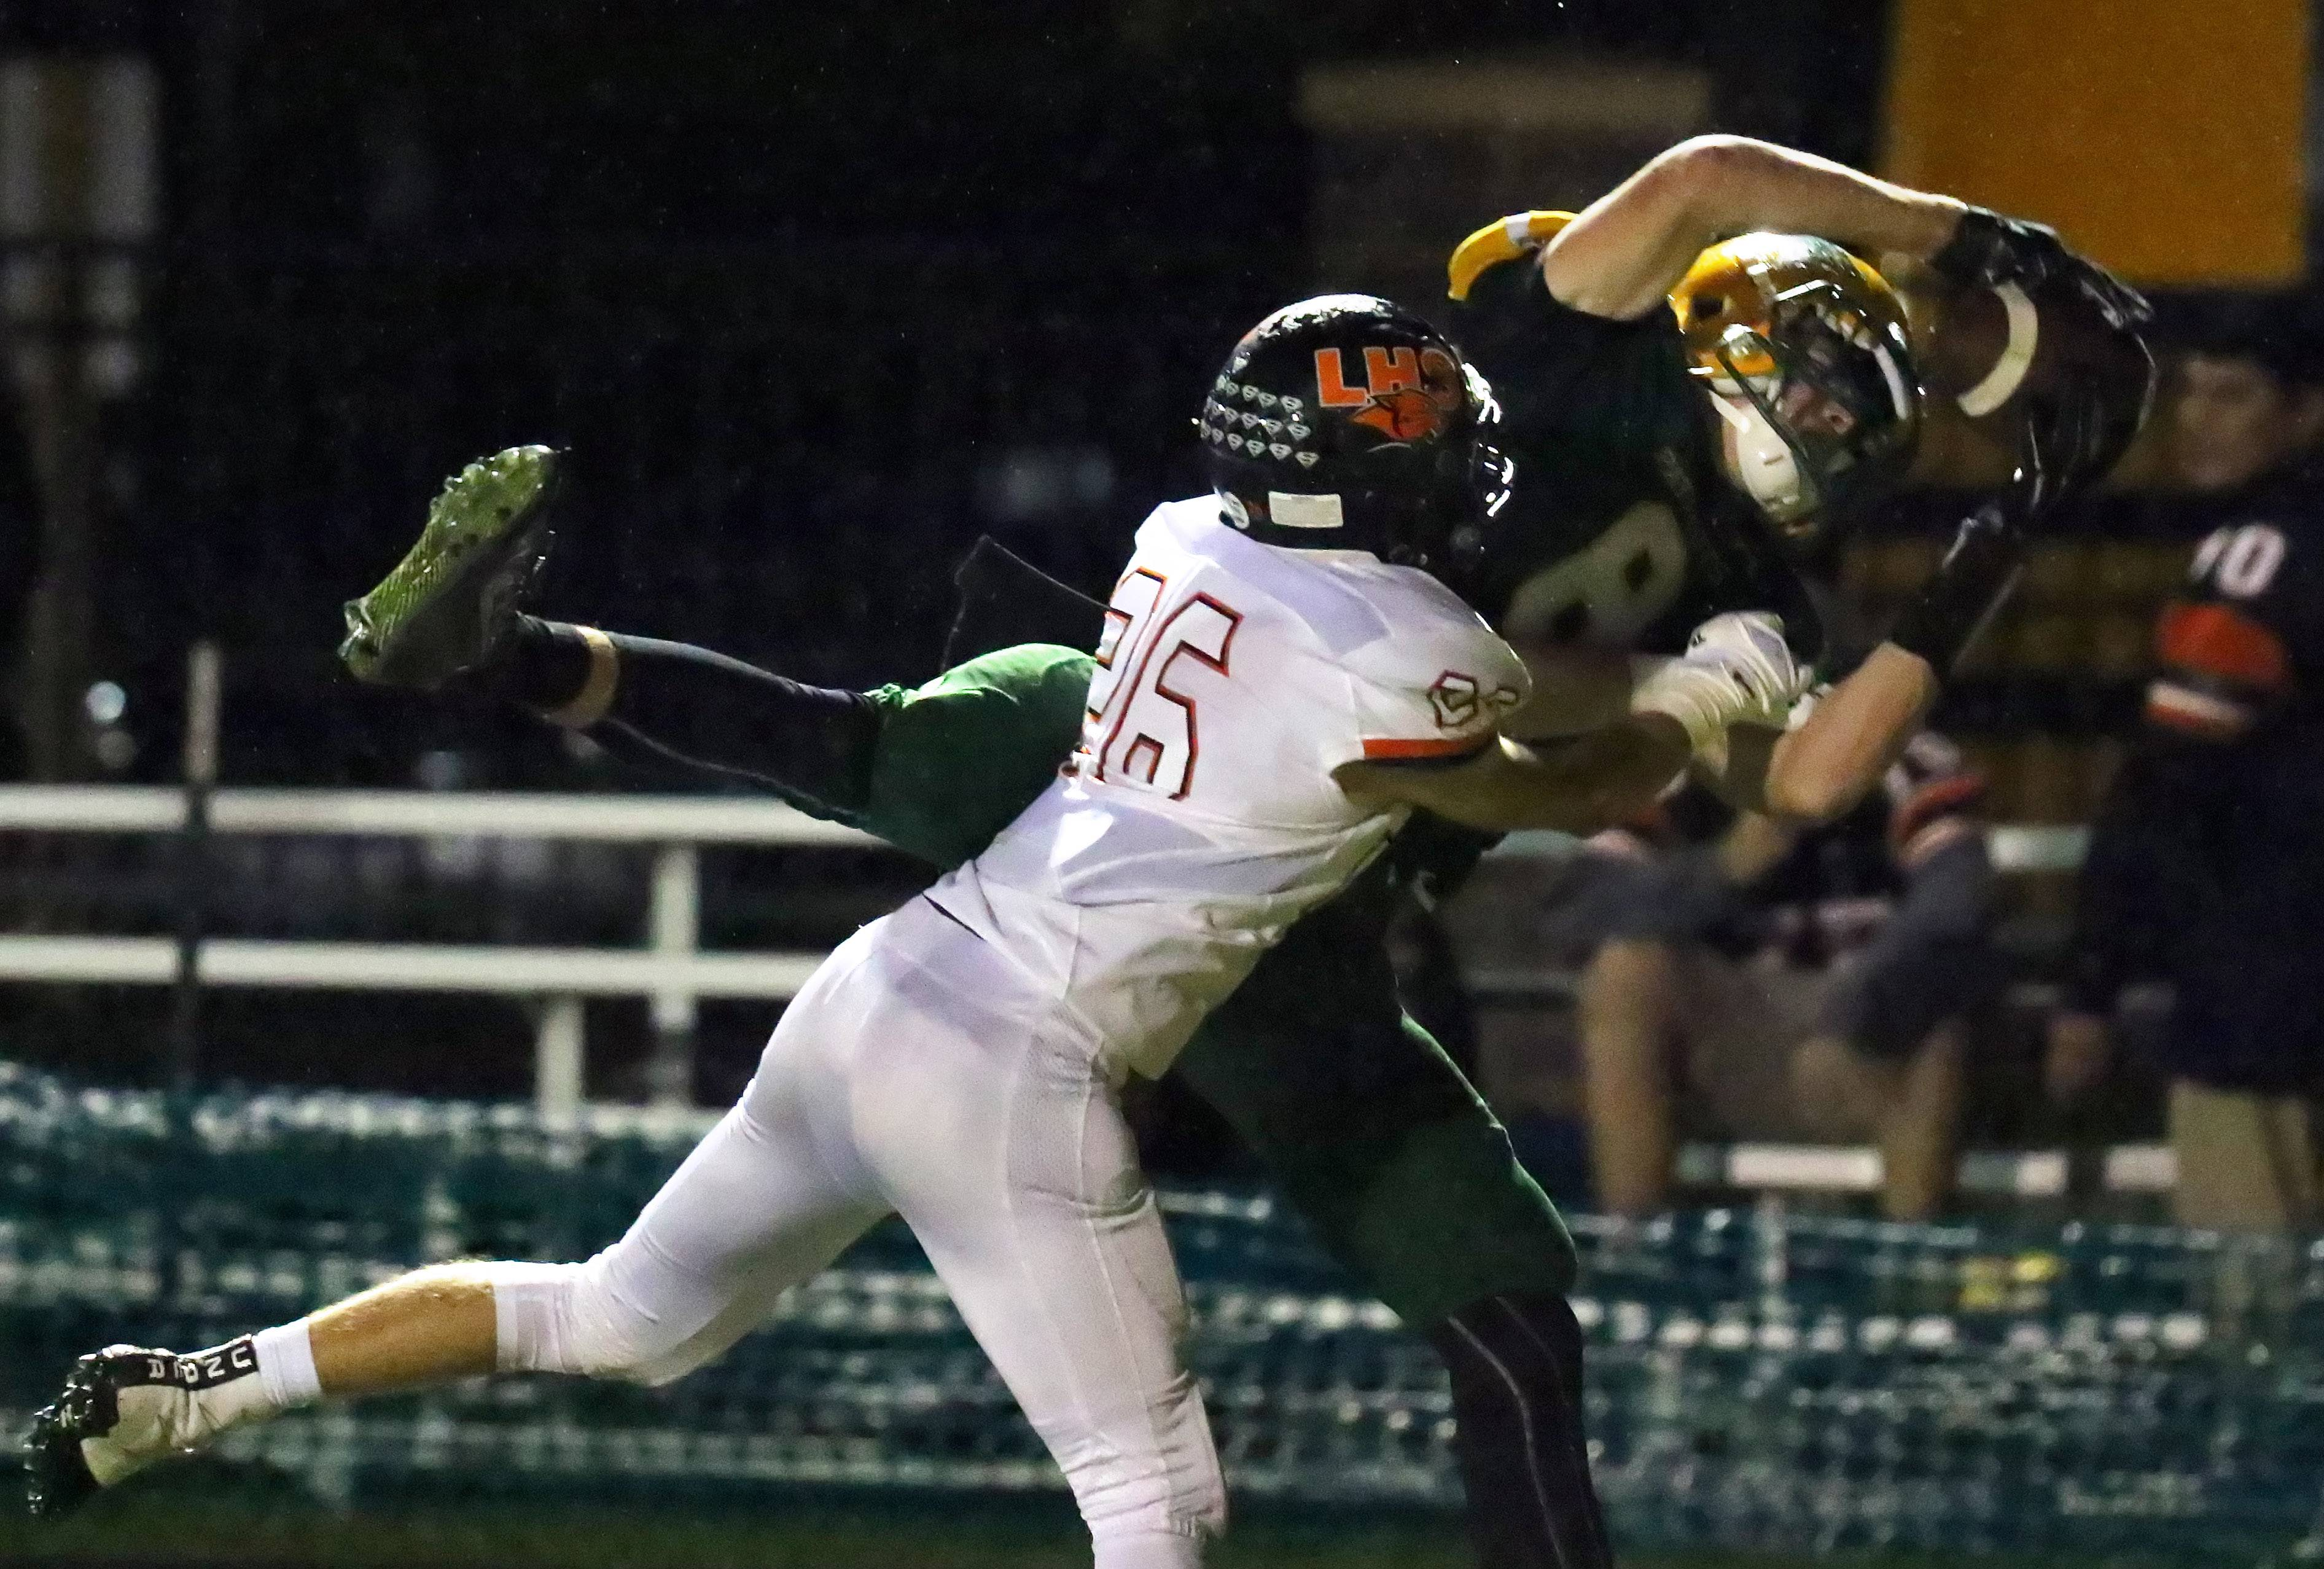 Stevenson's Michael Marchese, right, makes a catch in the end zone as Libertyville's Nathan Boe provides coverage Friday night at Stevenson.